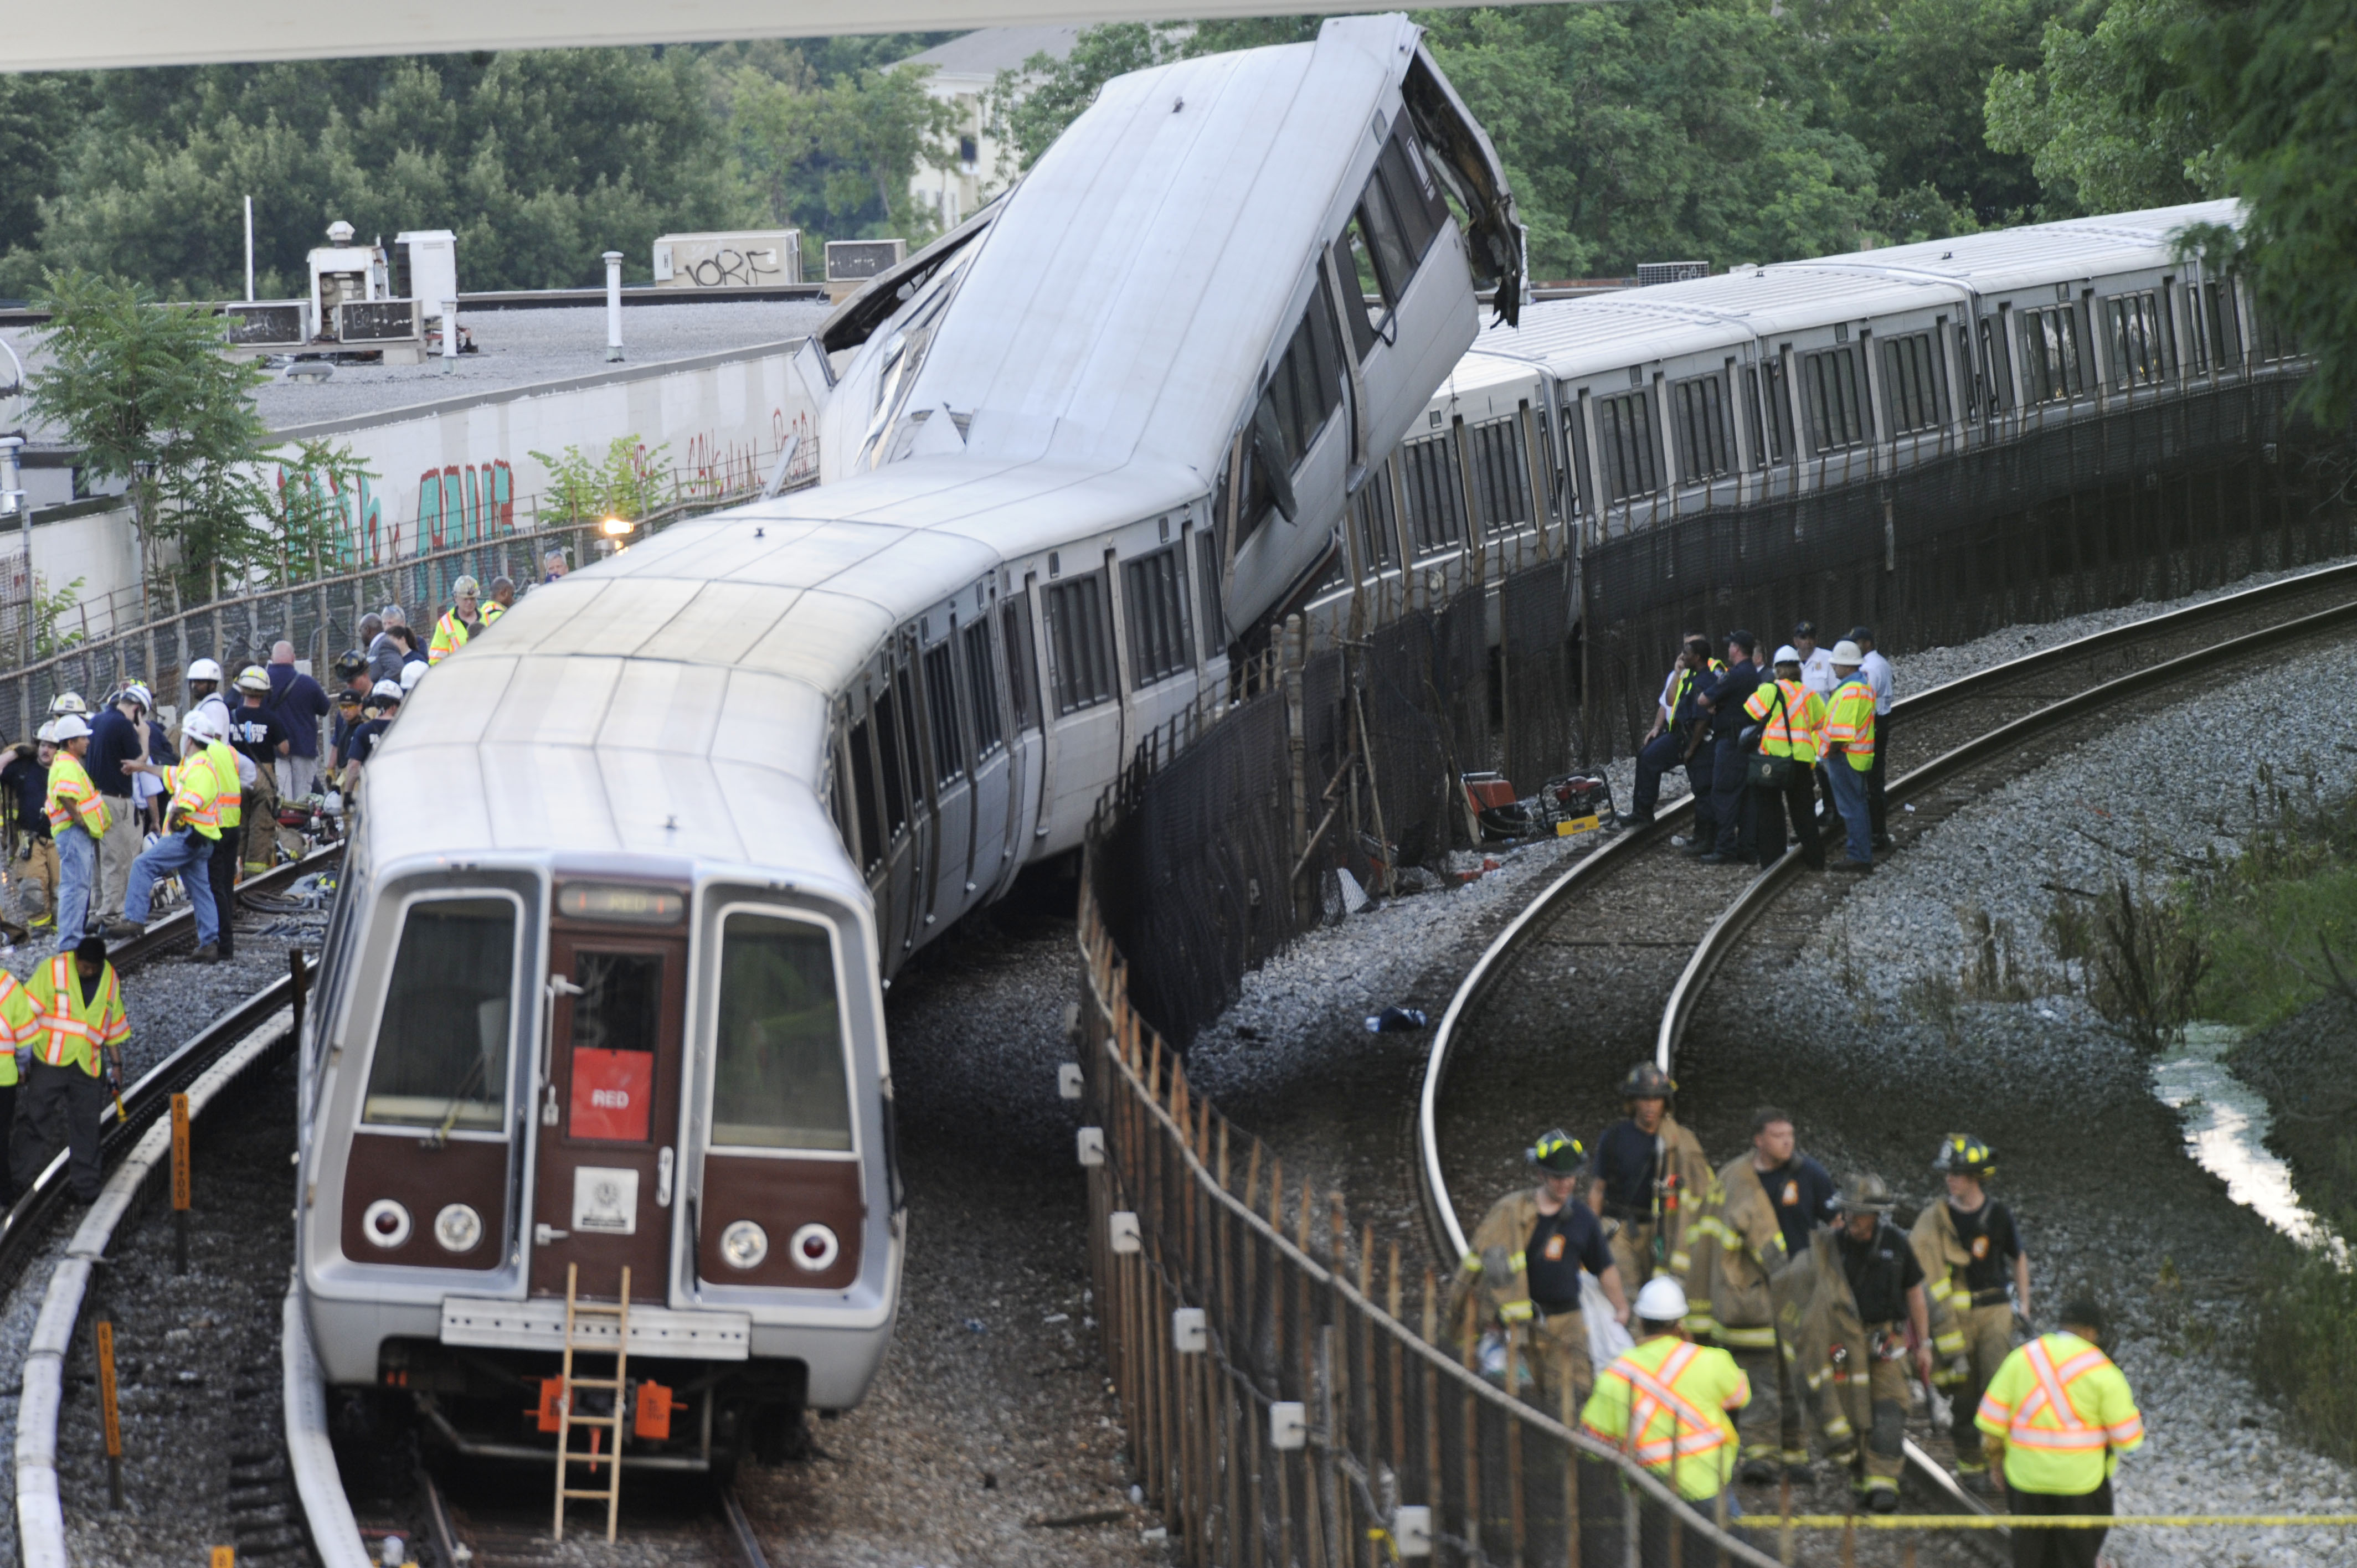 Metro closes final safety recommendation tied to deadly 2009 crash